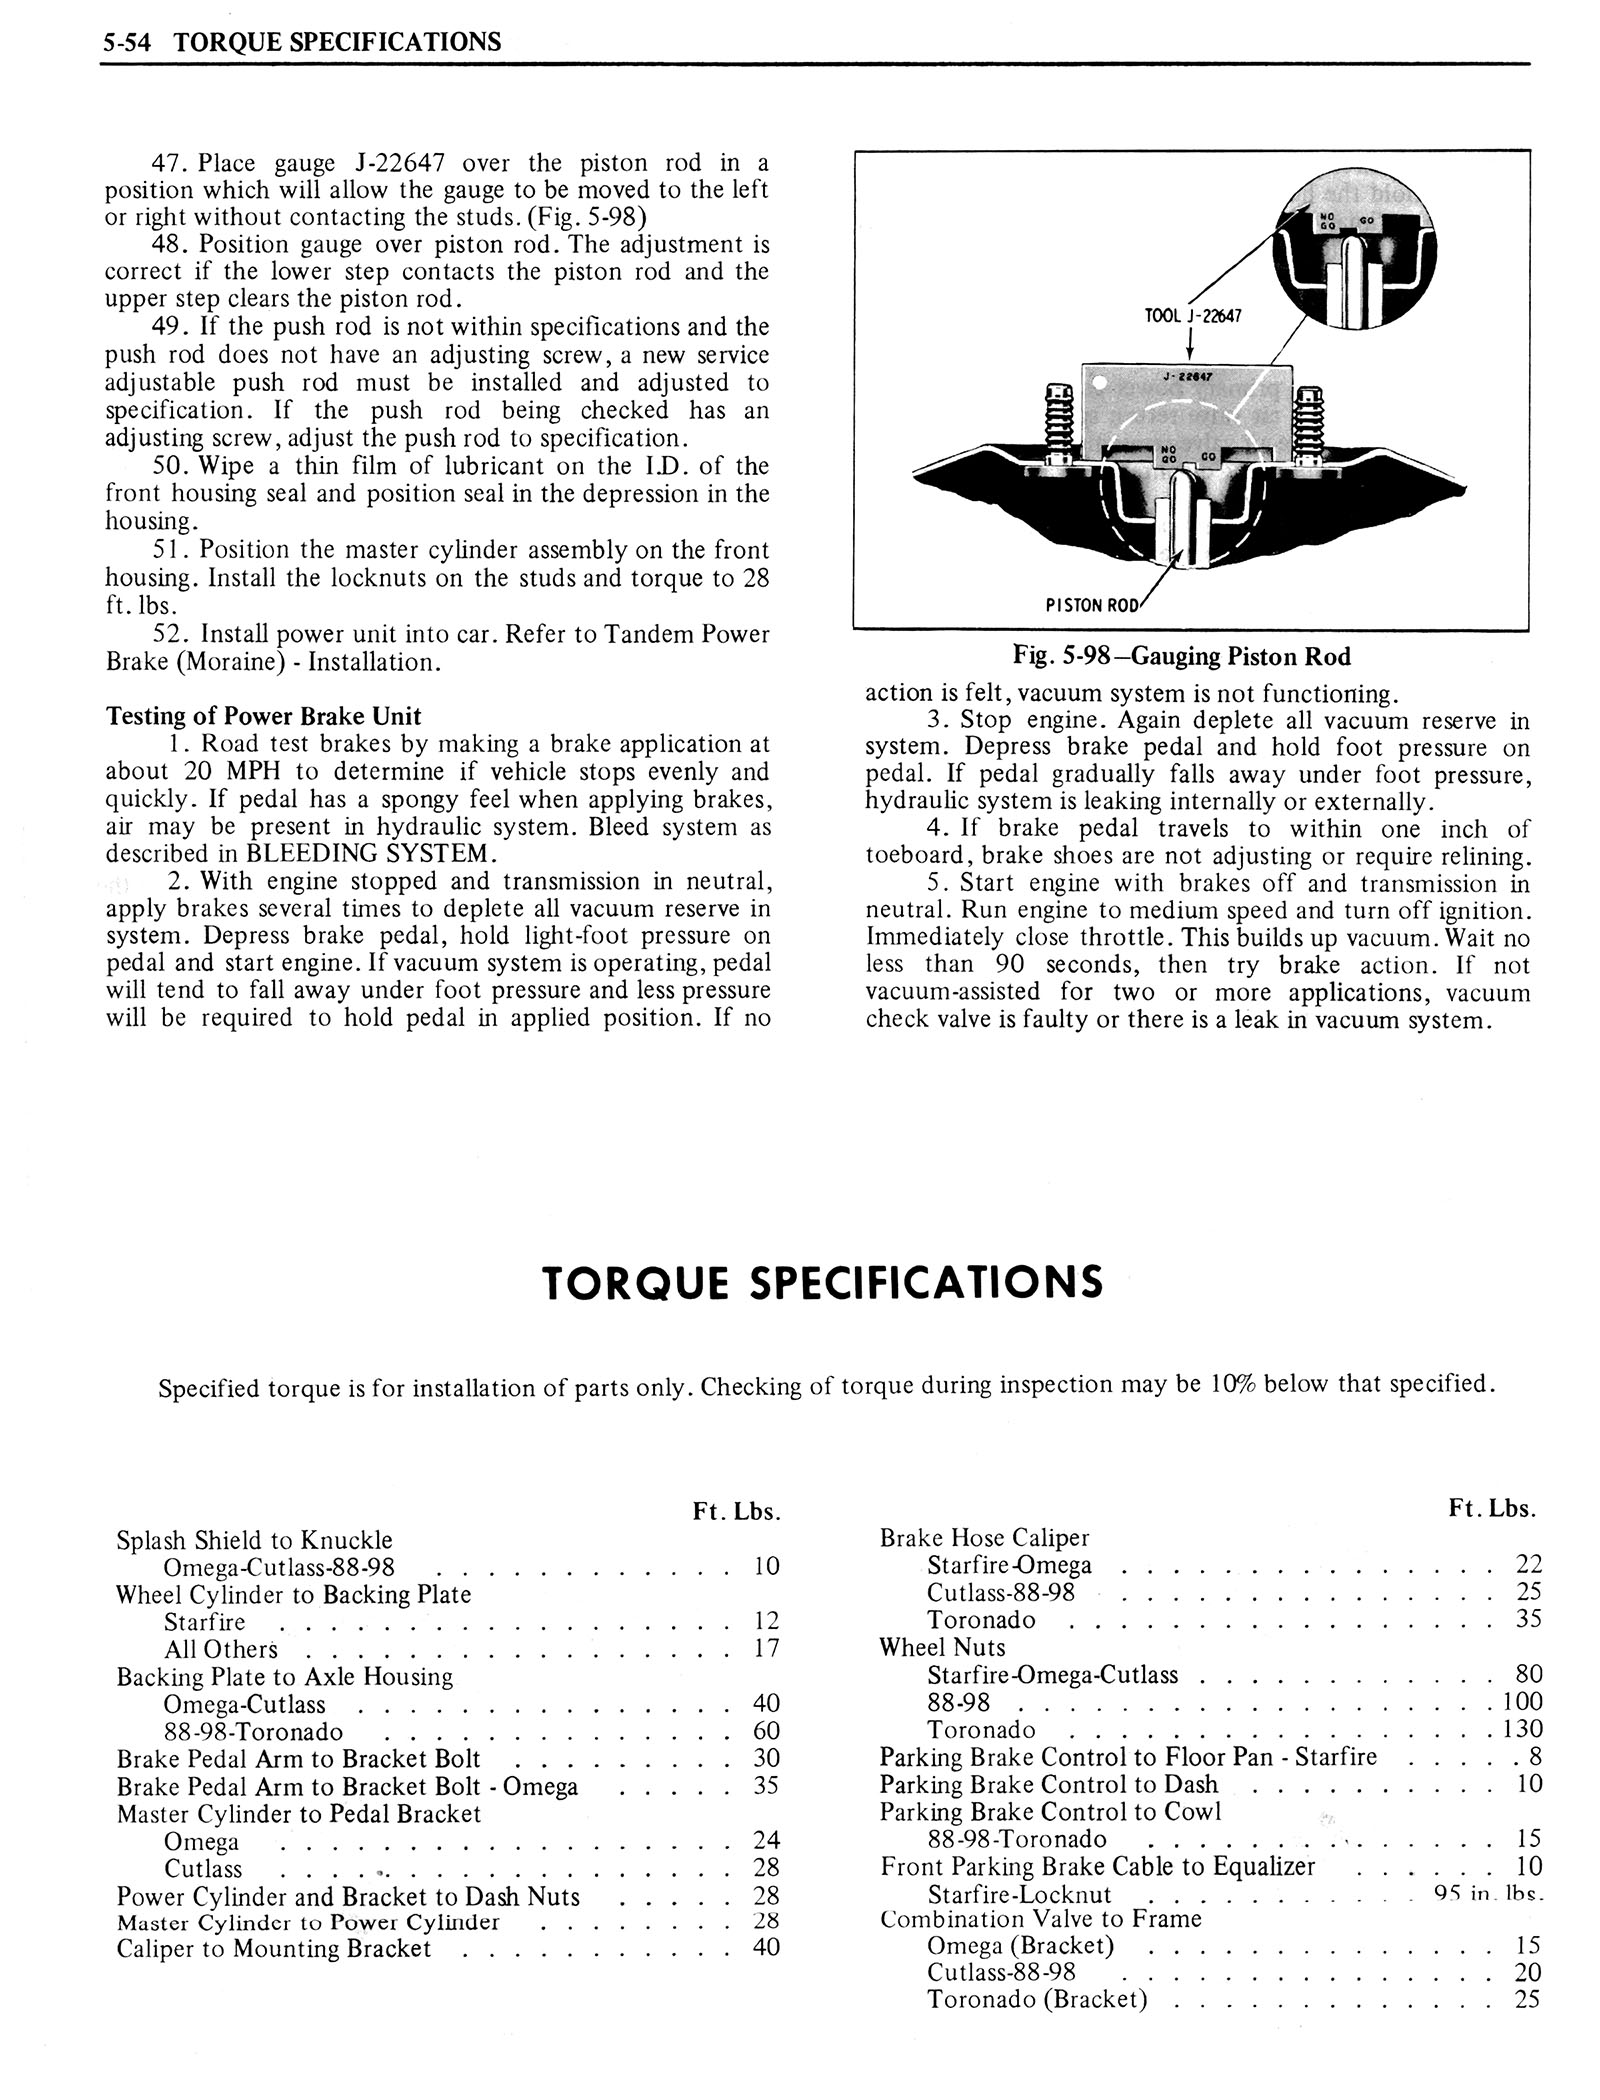 1976 Oldsmobile Service Manual page 393 of 1390